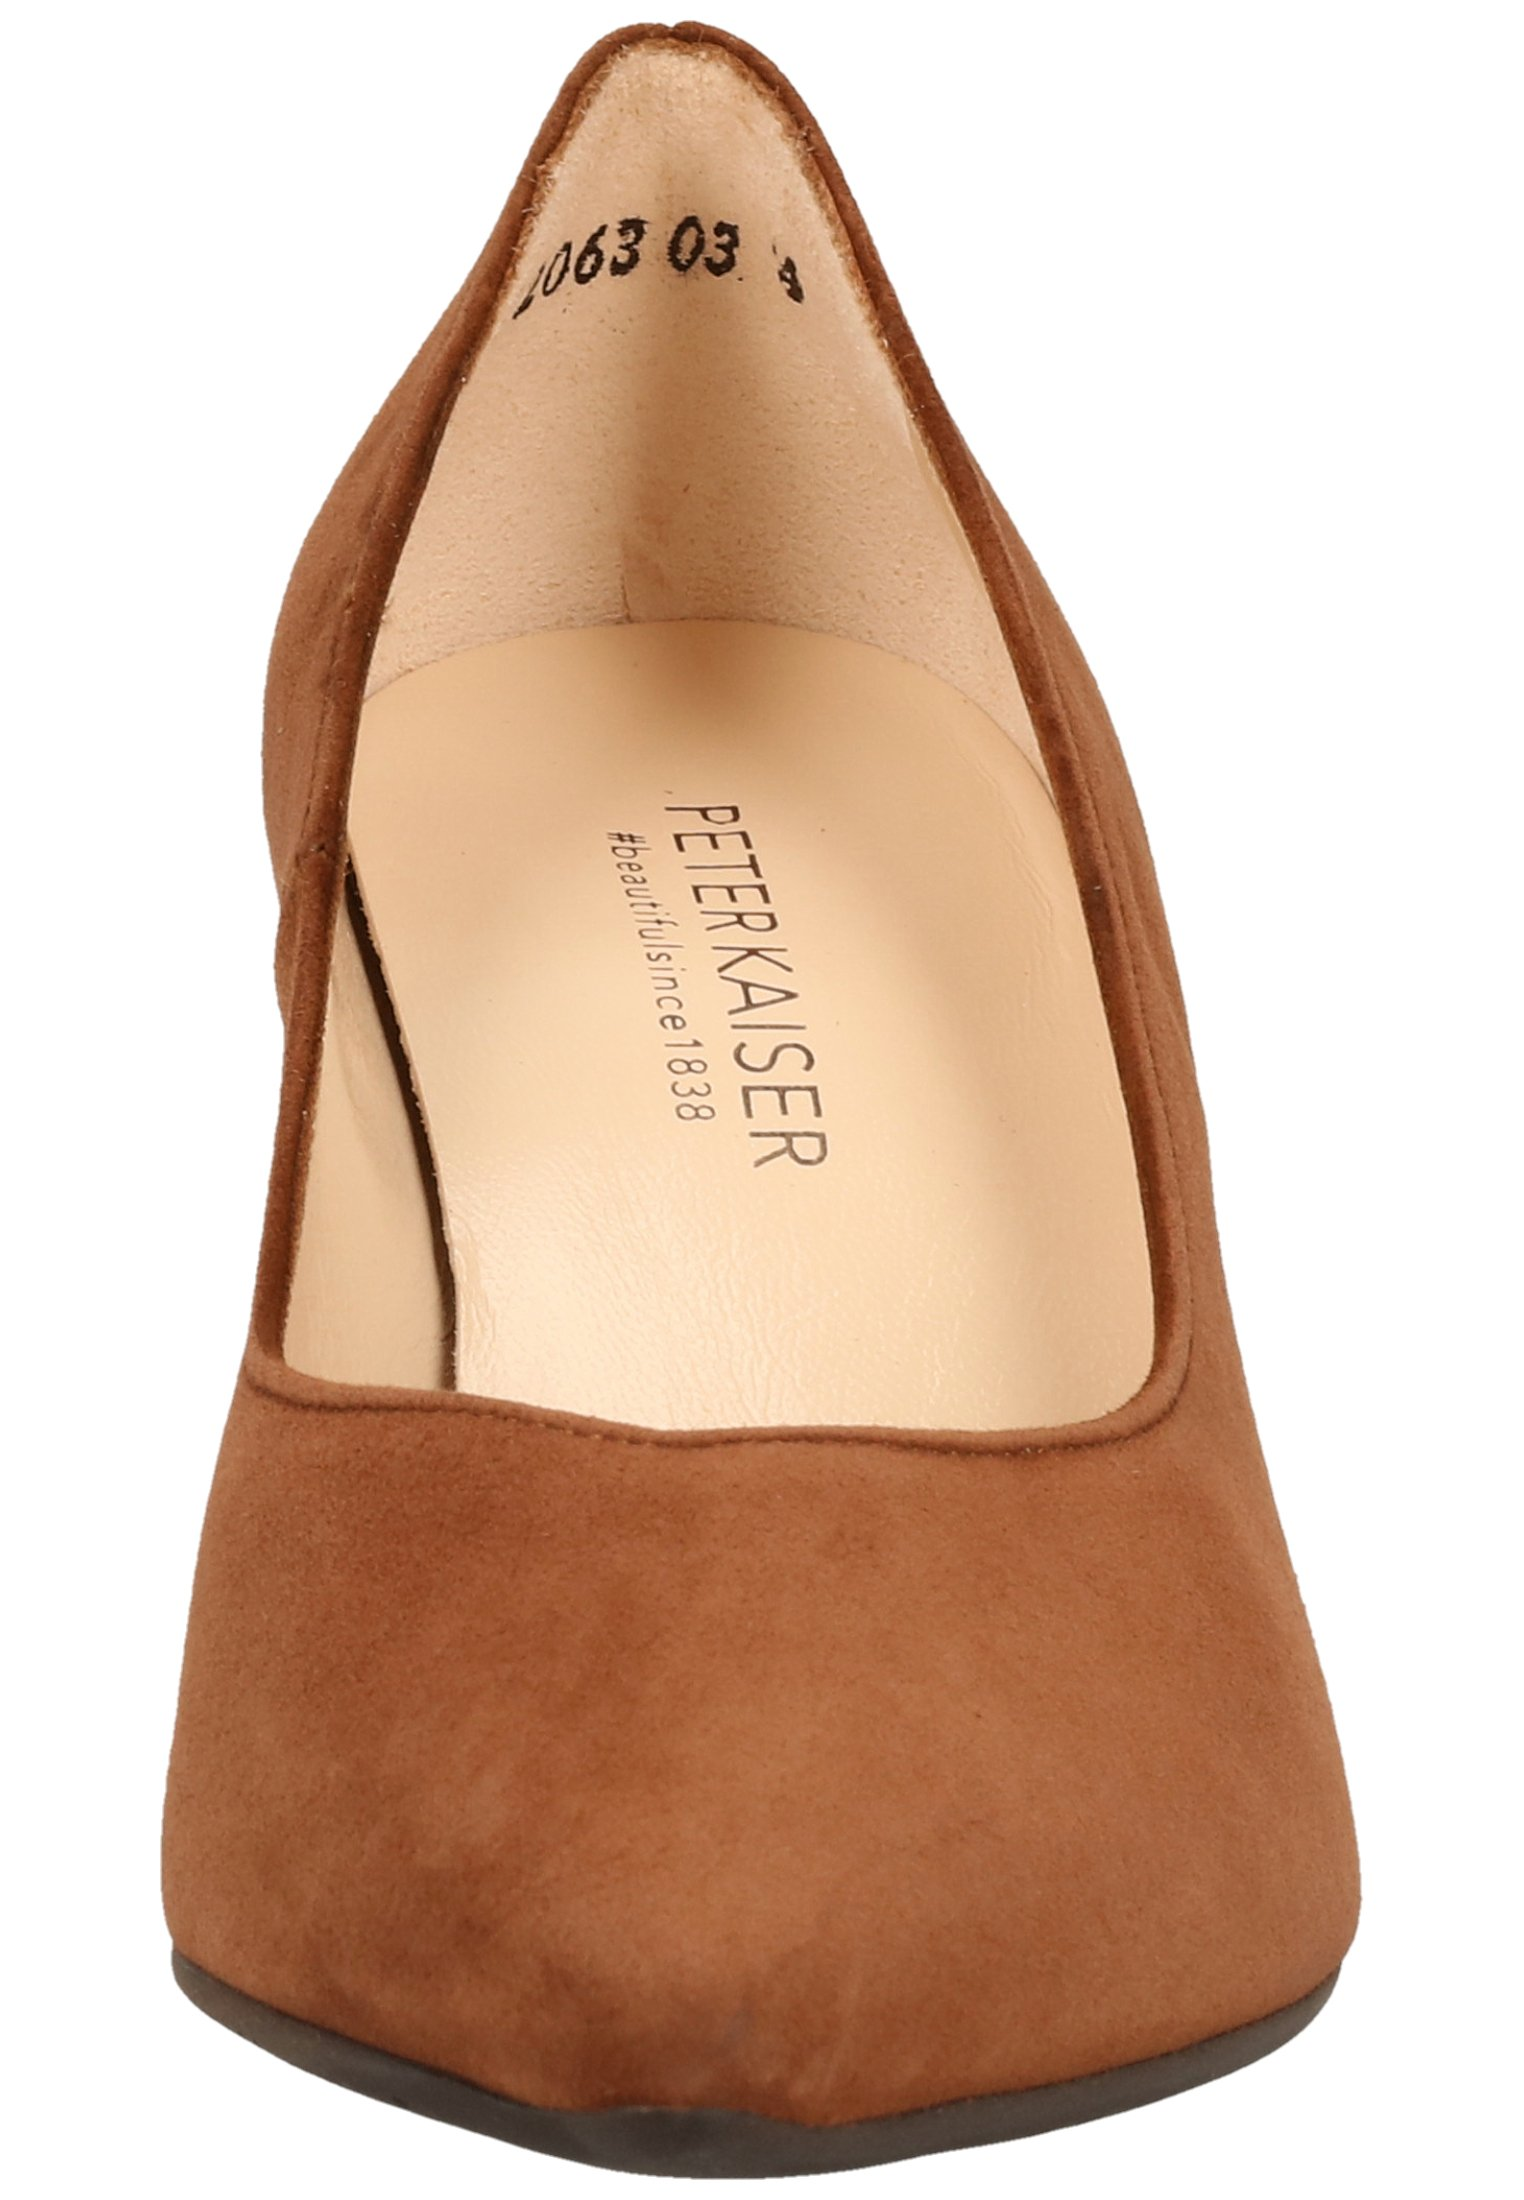 Peter Kaiser Pumps - Sable 798